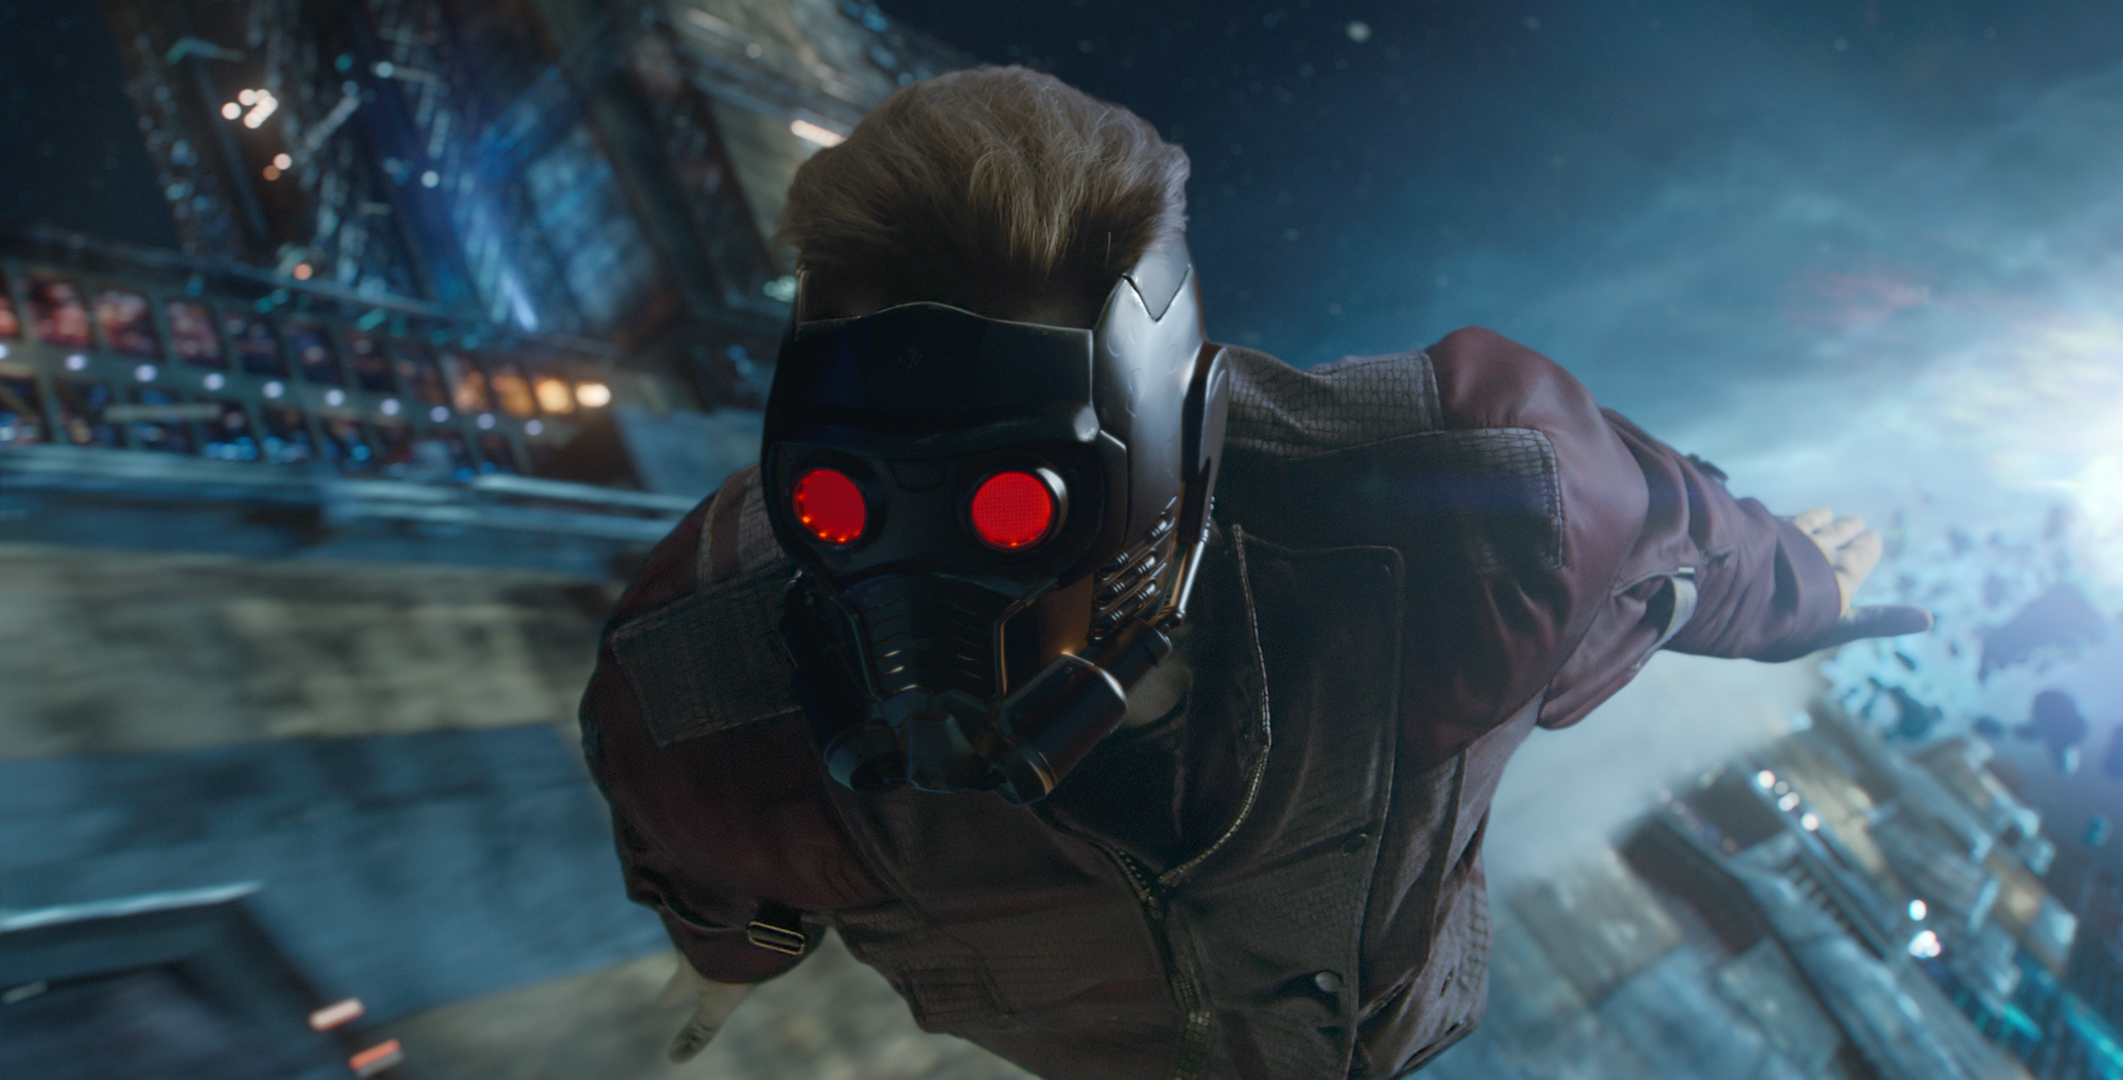 Image of the day who is star lord s father we have one less option